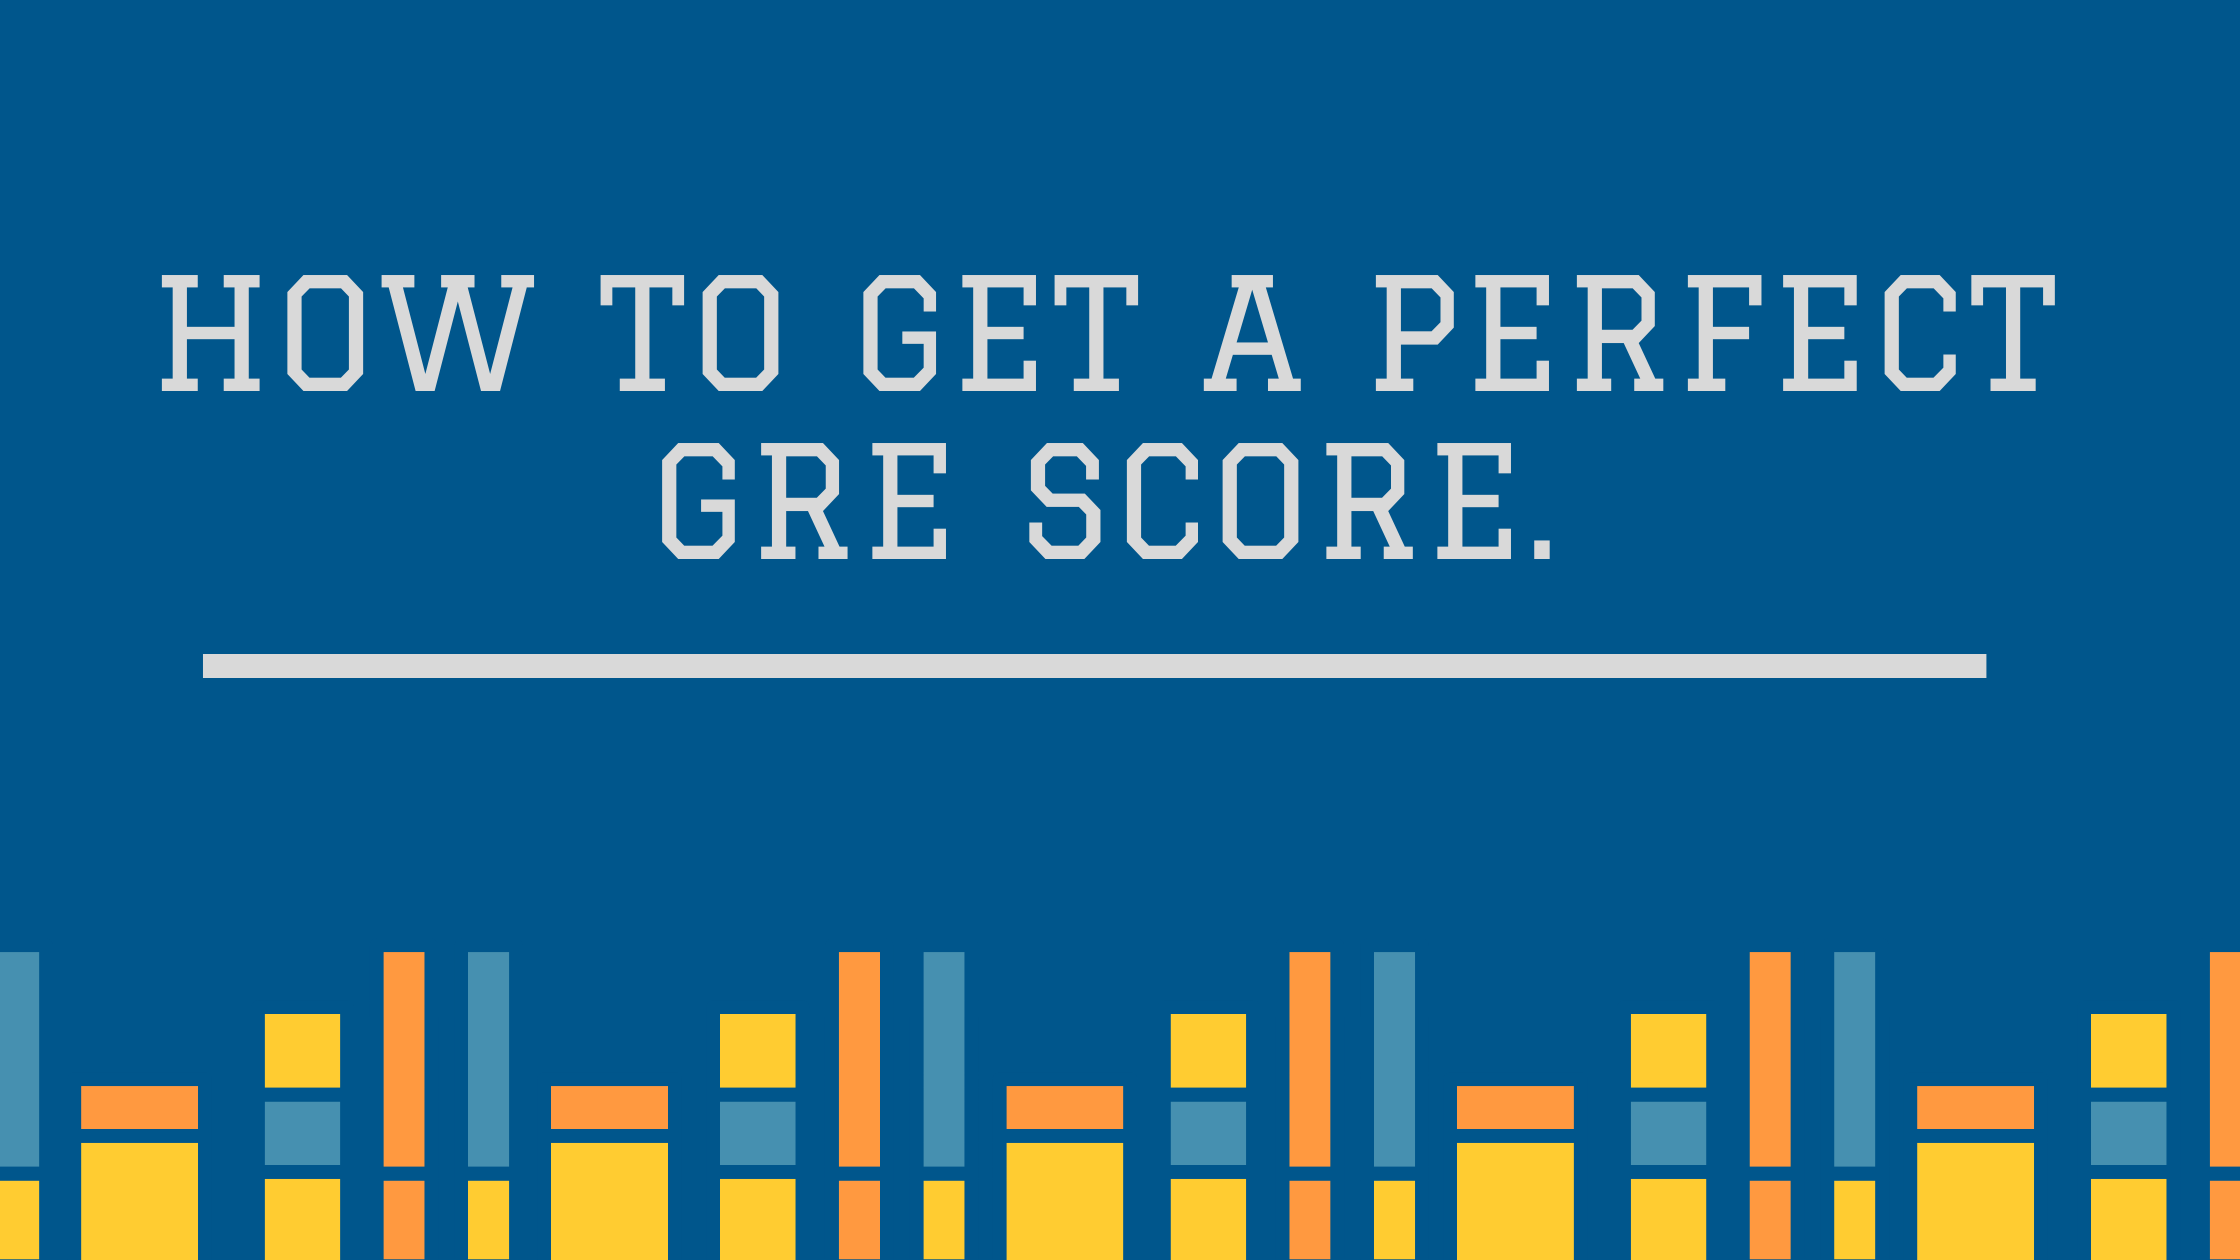 7 Shortcut tips to get a 320 in GRE